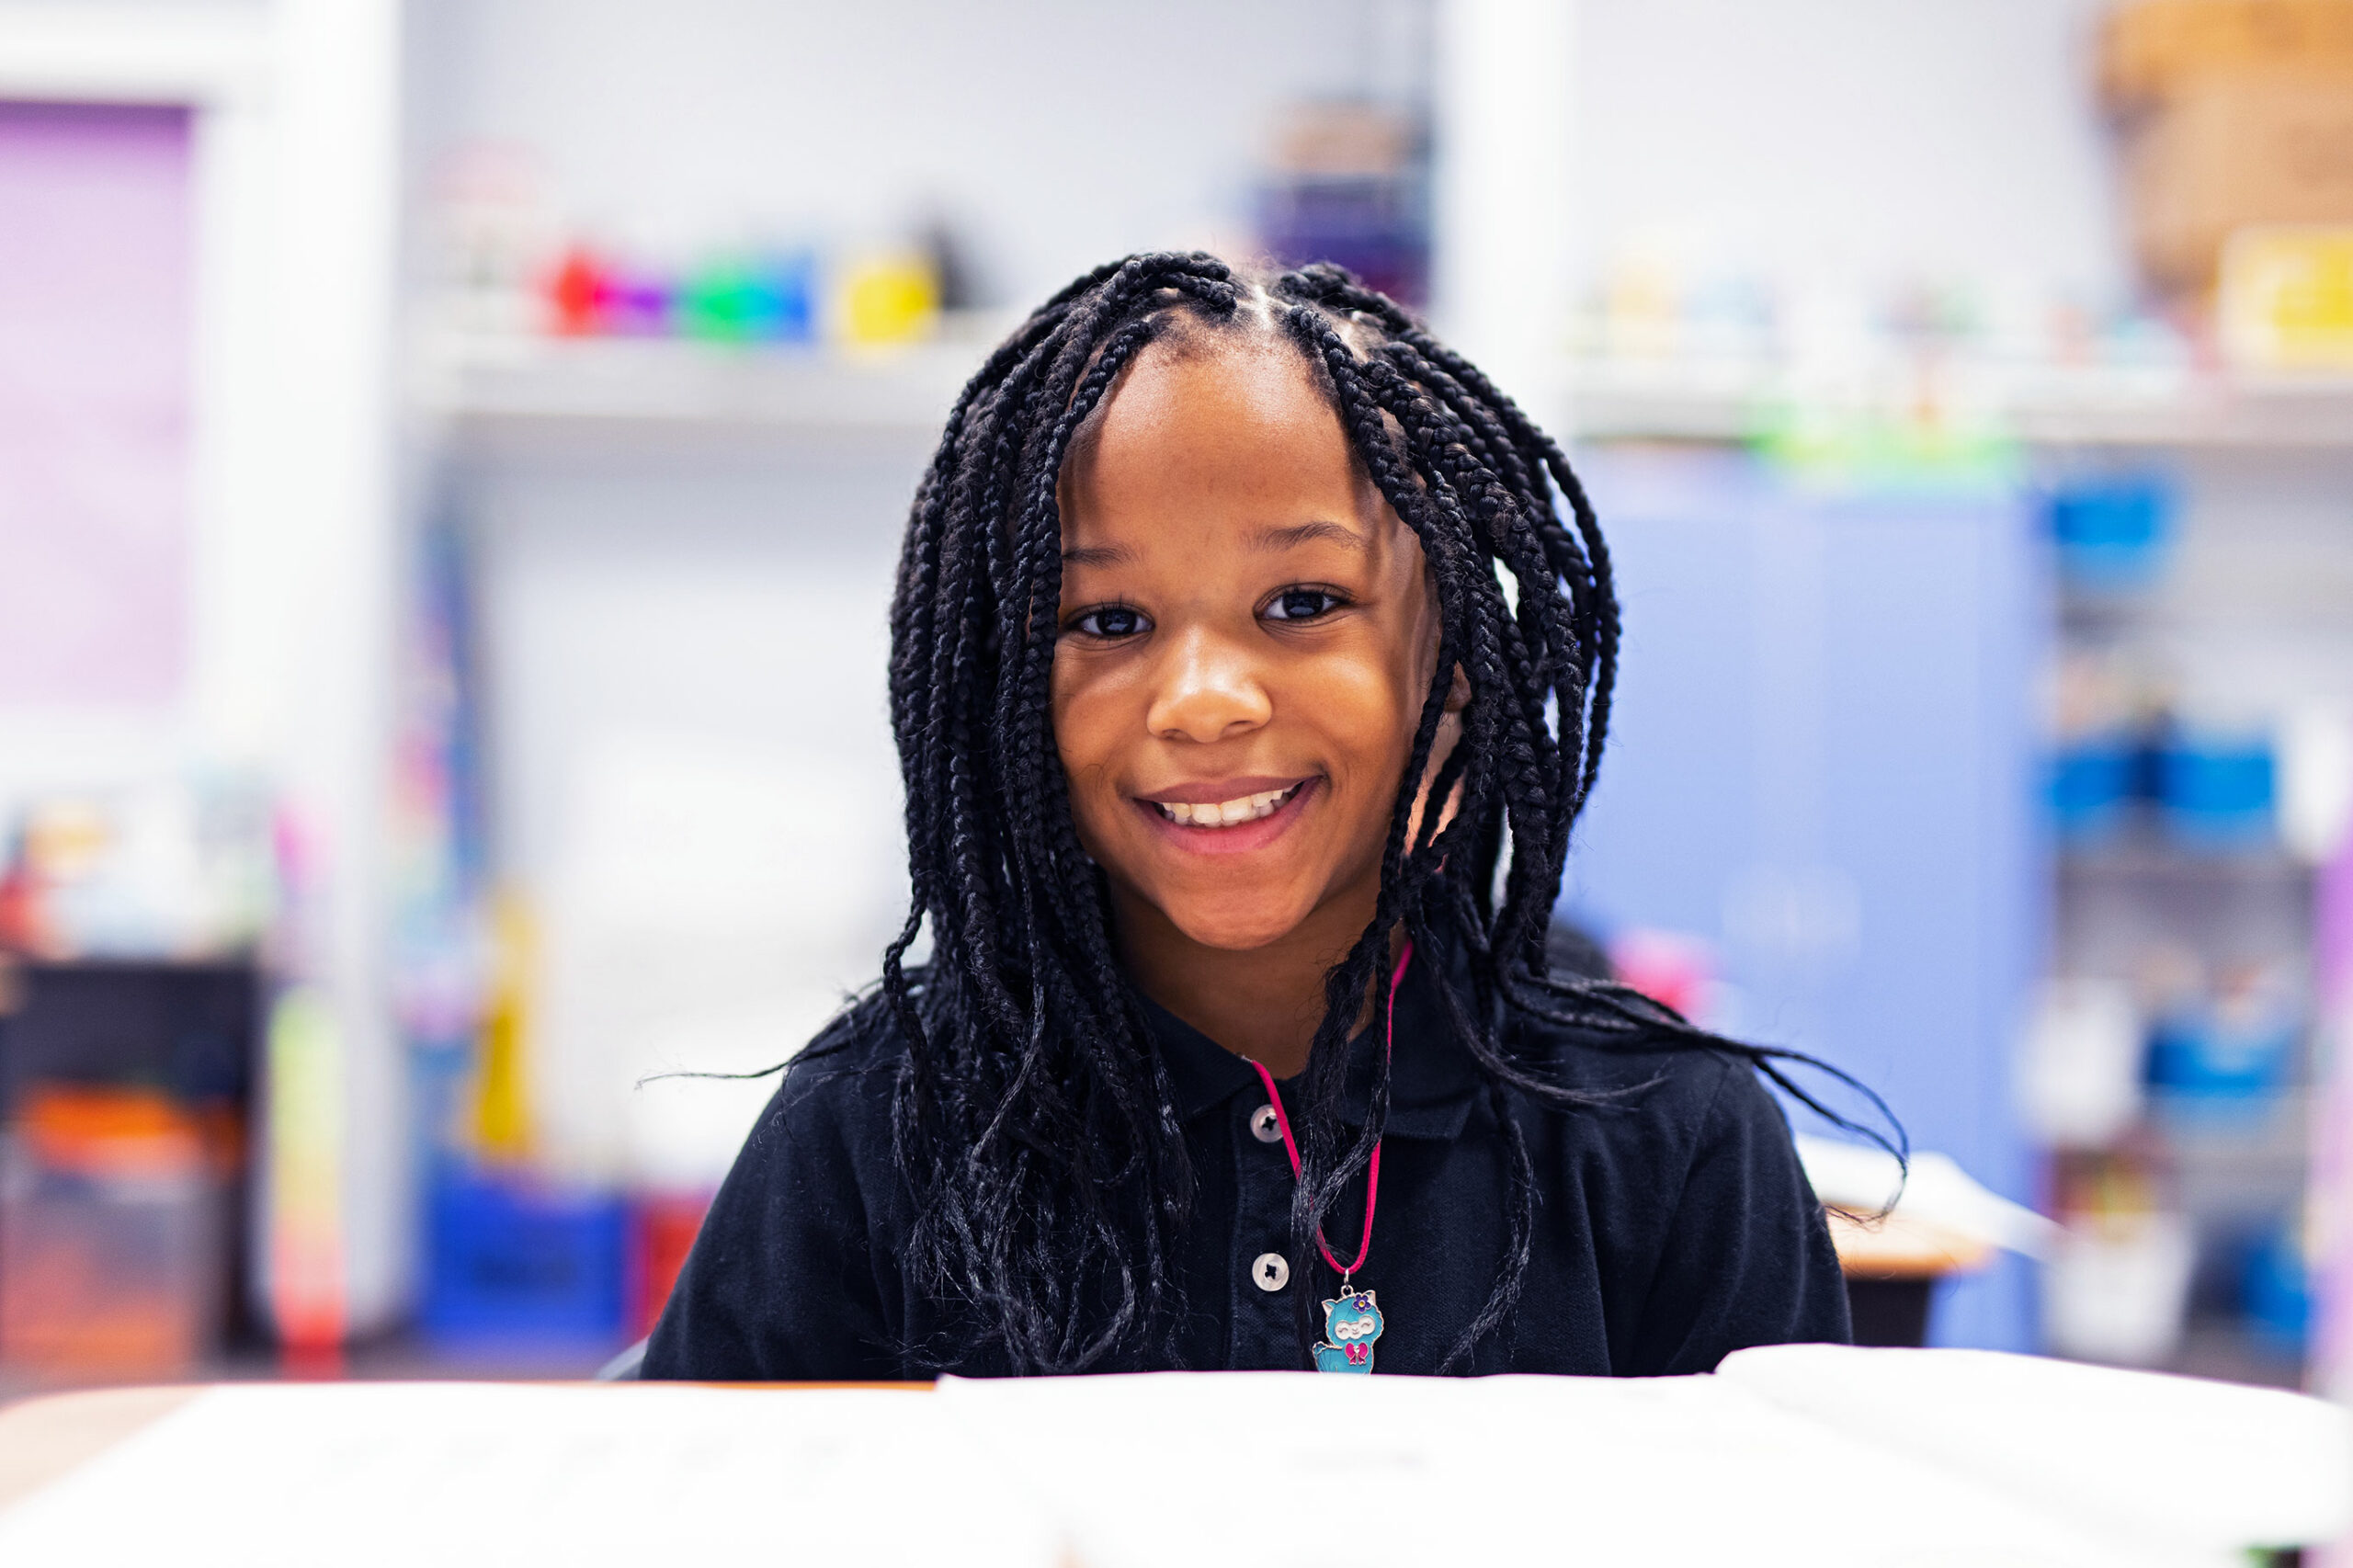 Smiling student in classroom.